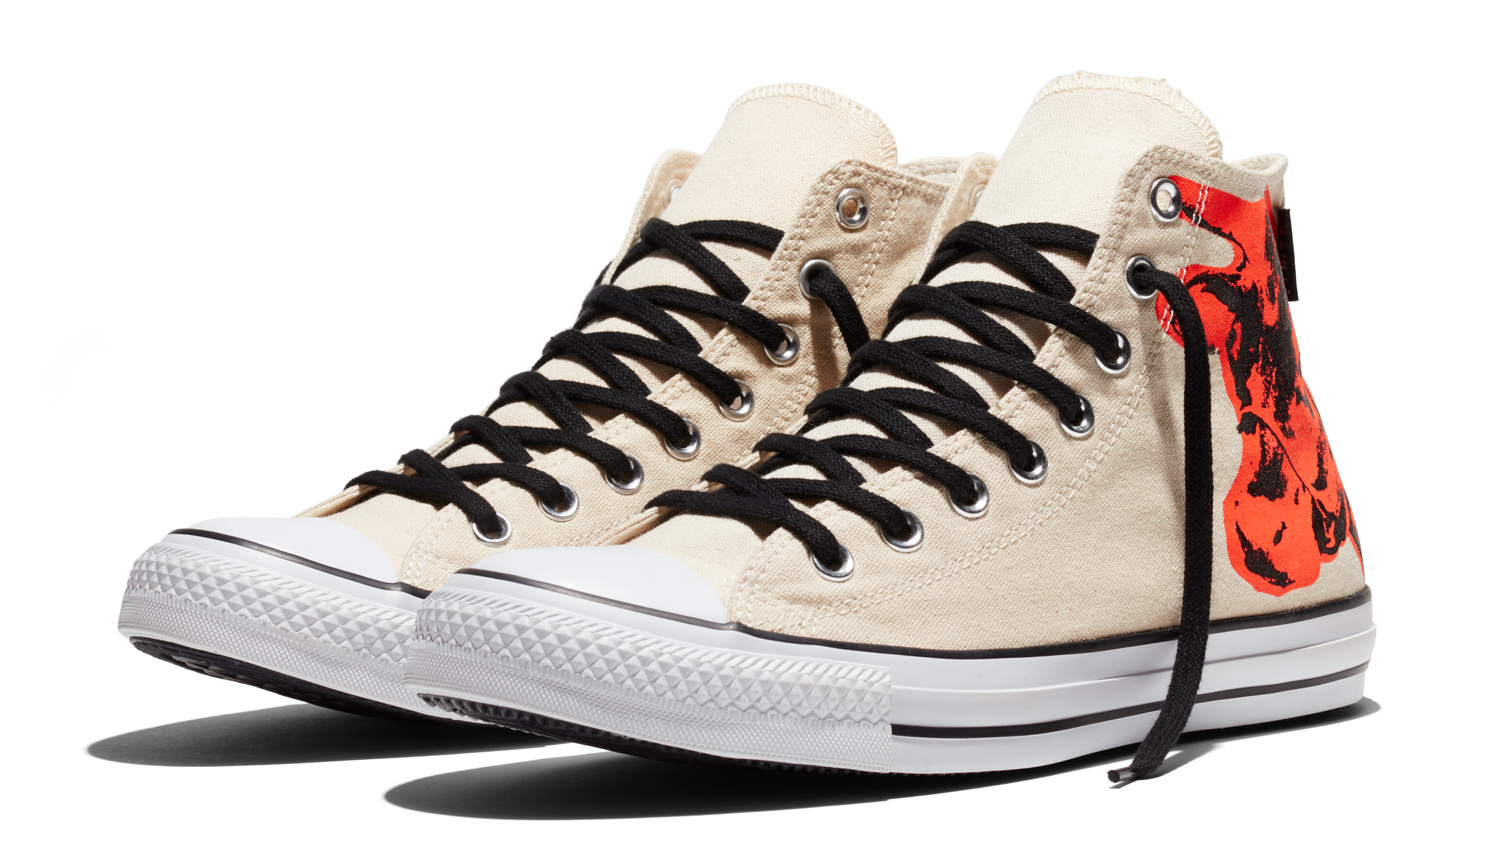 Converse Launches Glow In The Dark Converse All Star Lux Rubber Collection Converse Launches Glow In The Dark Converse All Star Lux Rubber Collection new foto